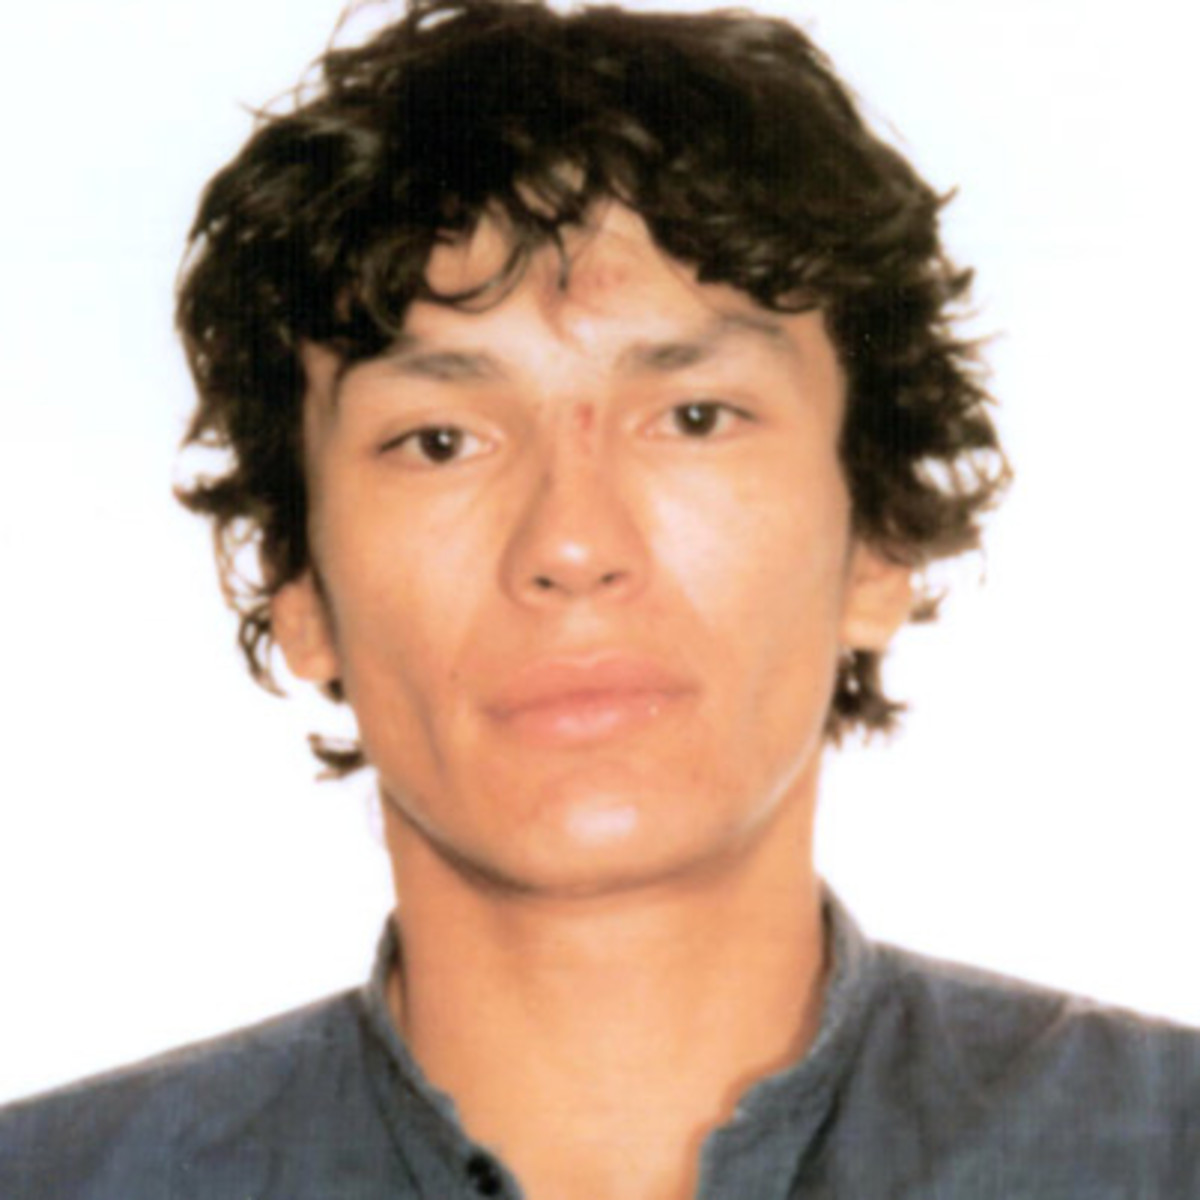 Richard Ramirez - Wife, Quotes & Murders - Biography